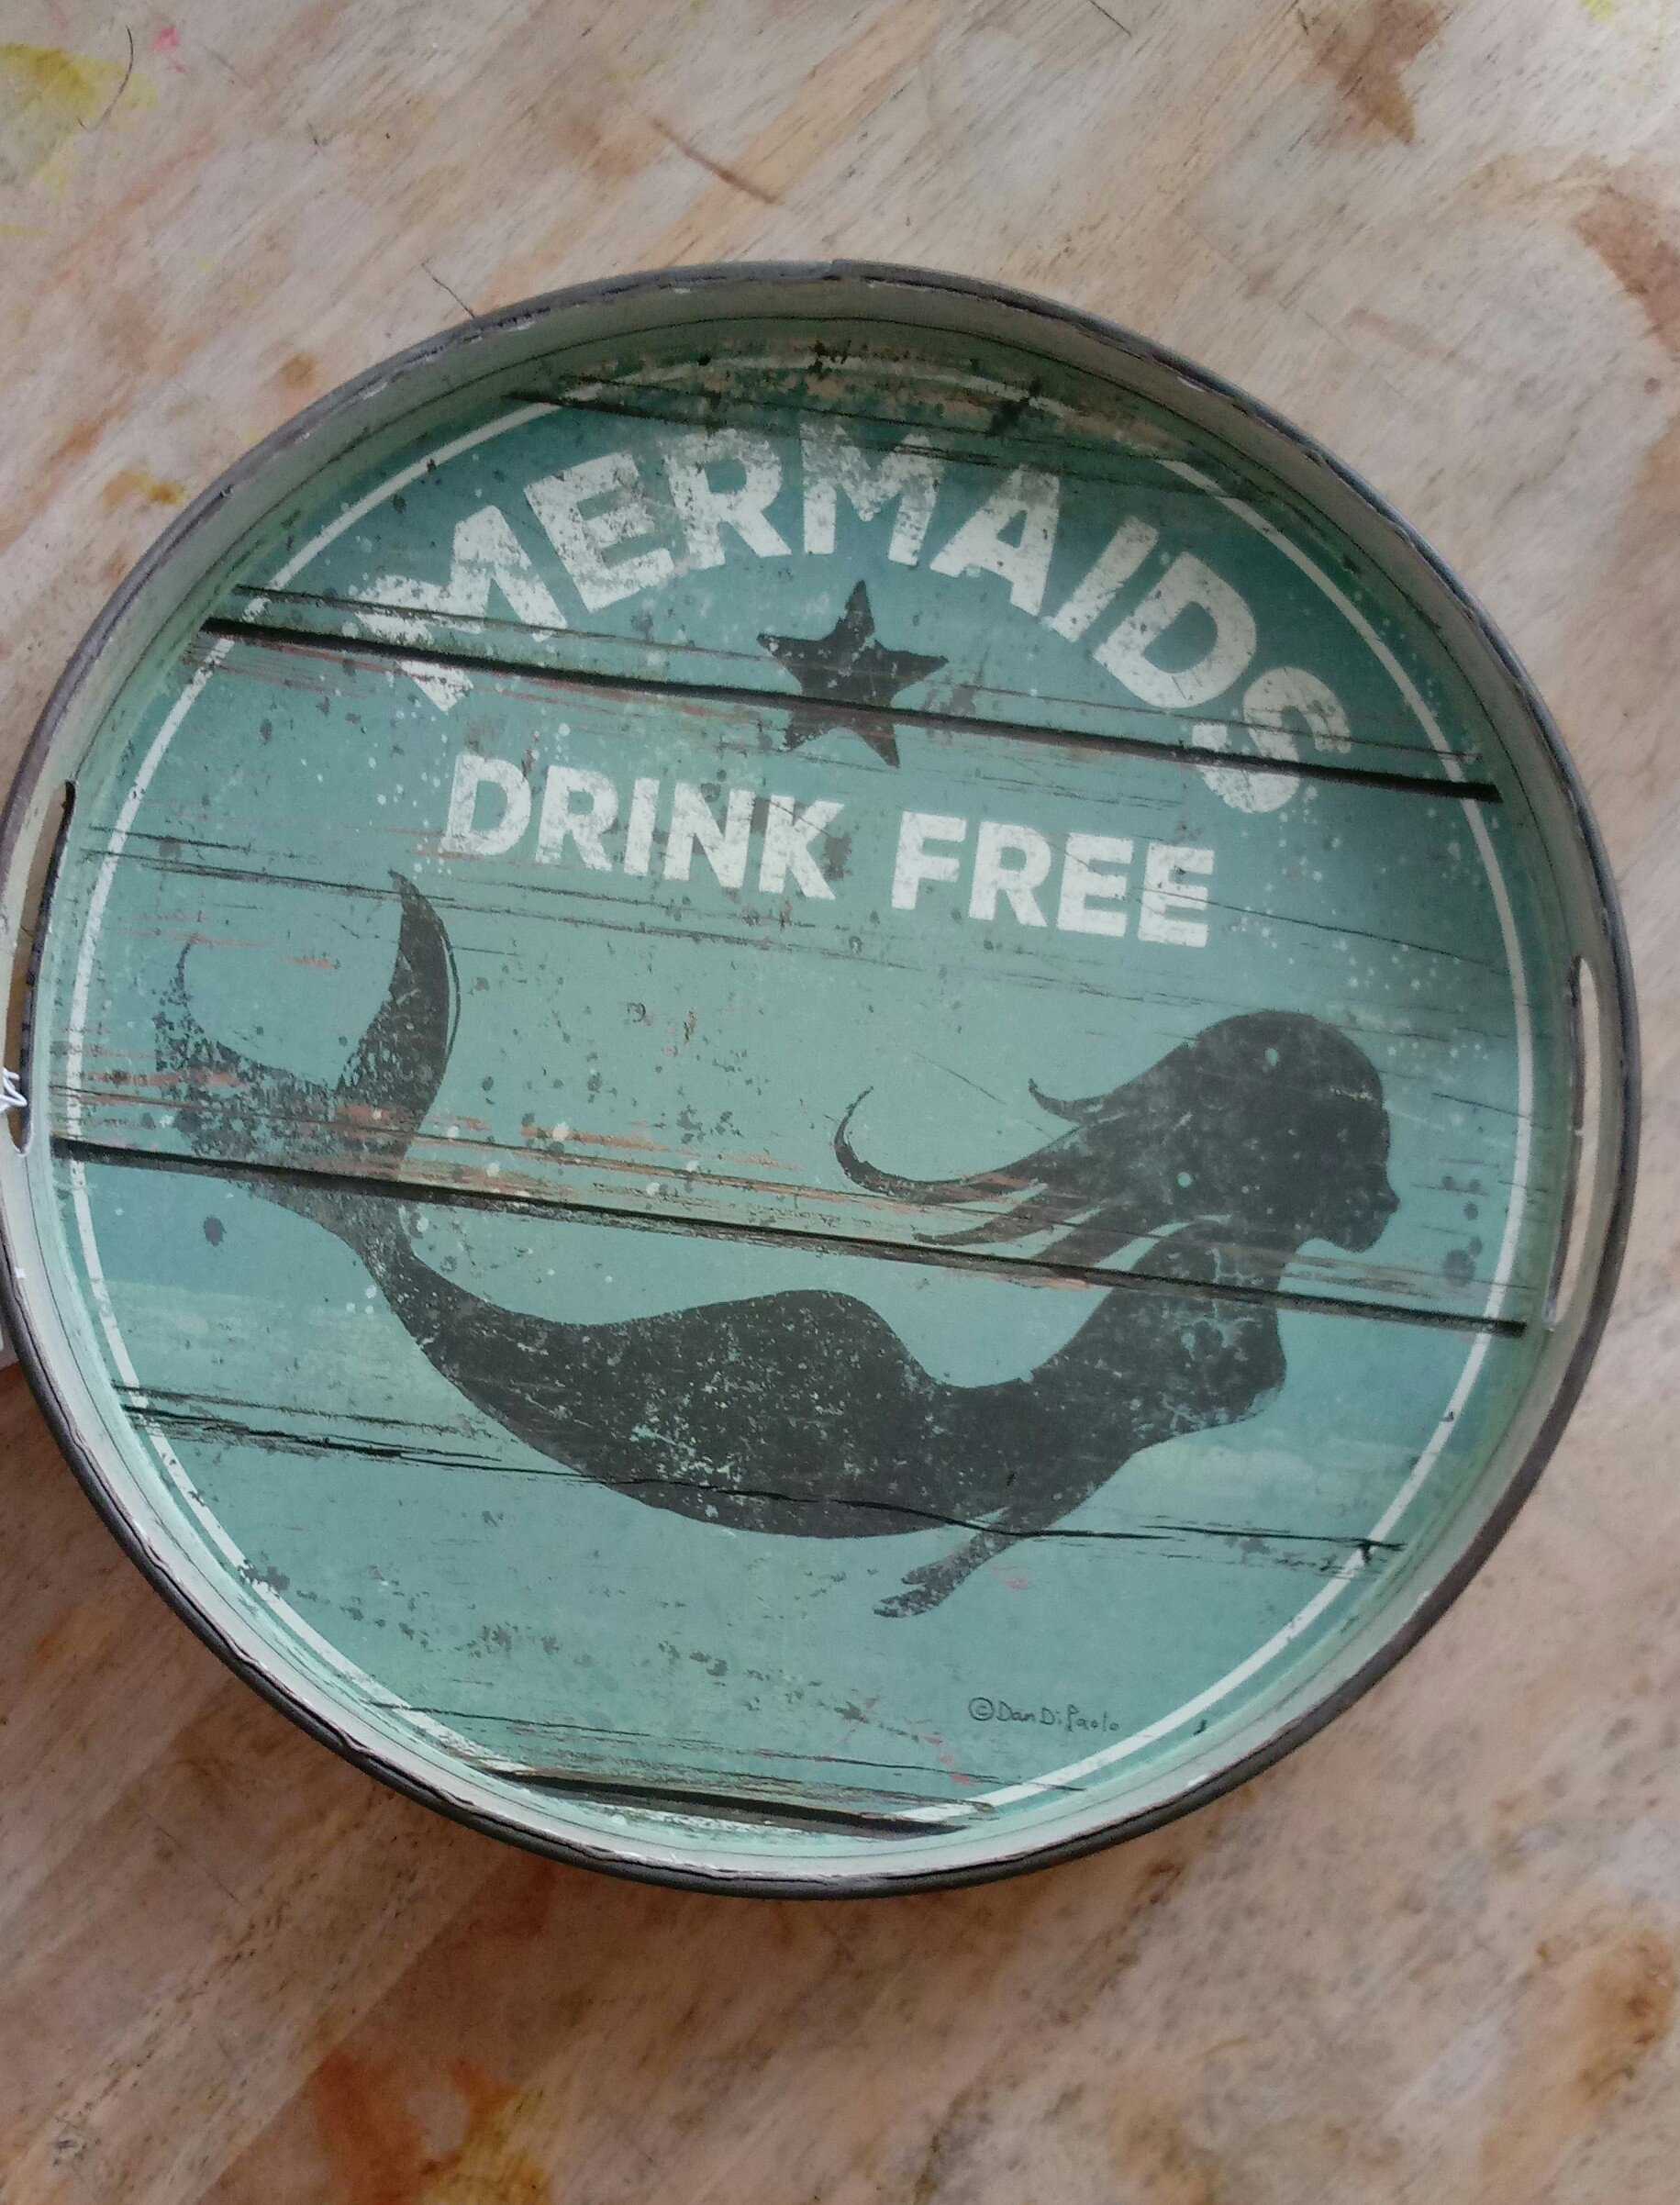 Primitives by Kathy Beach Mermaids Drink Free Decorative Tray, 12.5'' by Primitives by Kathy